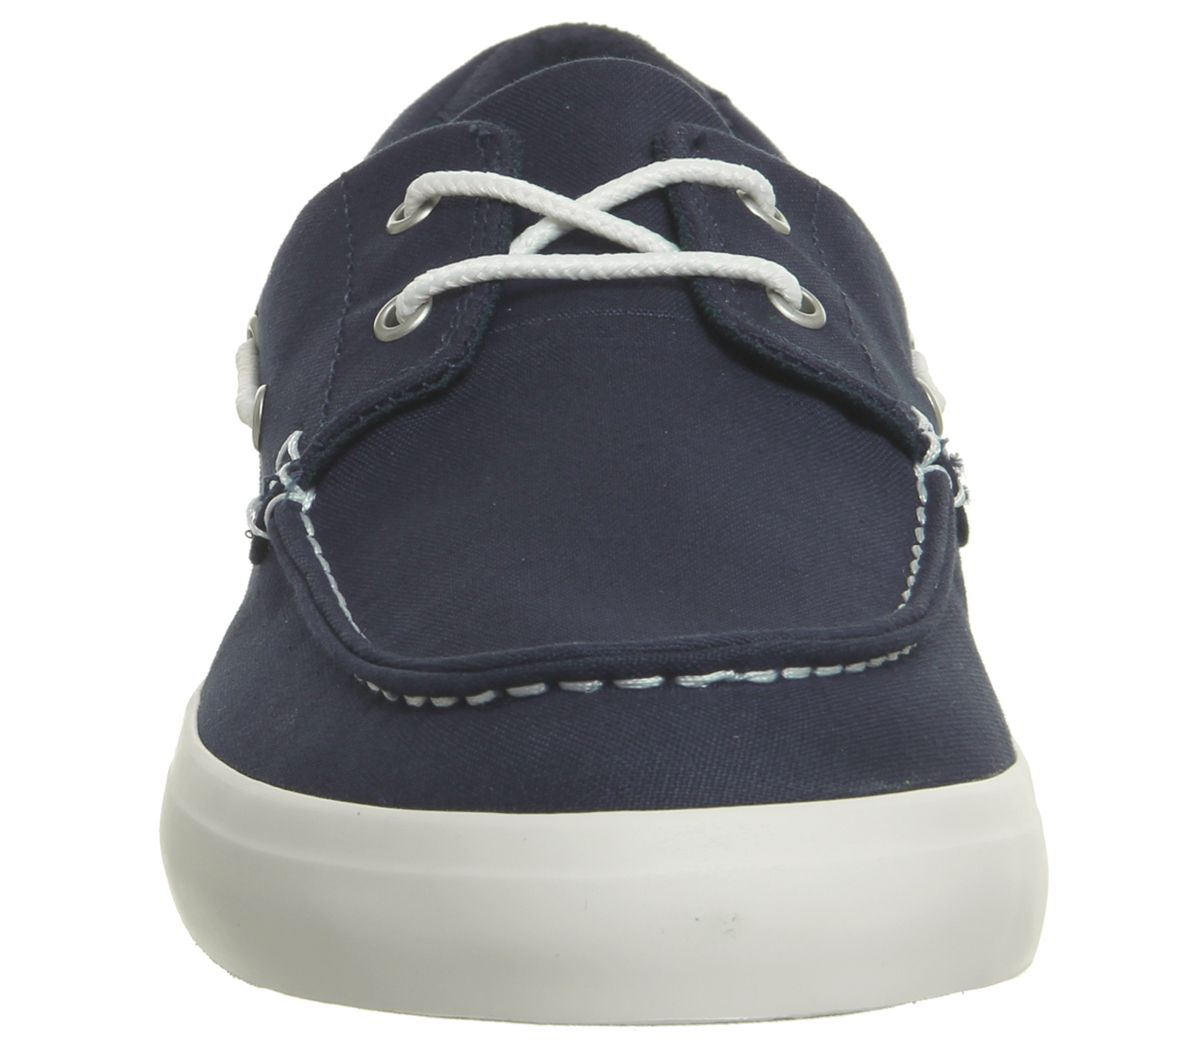 320c4a267dbd0e Sentinel Mens Timberland Newport Bay 2 Eye Boat Oxfords Navy Casual Shoes